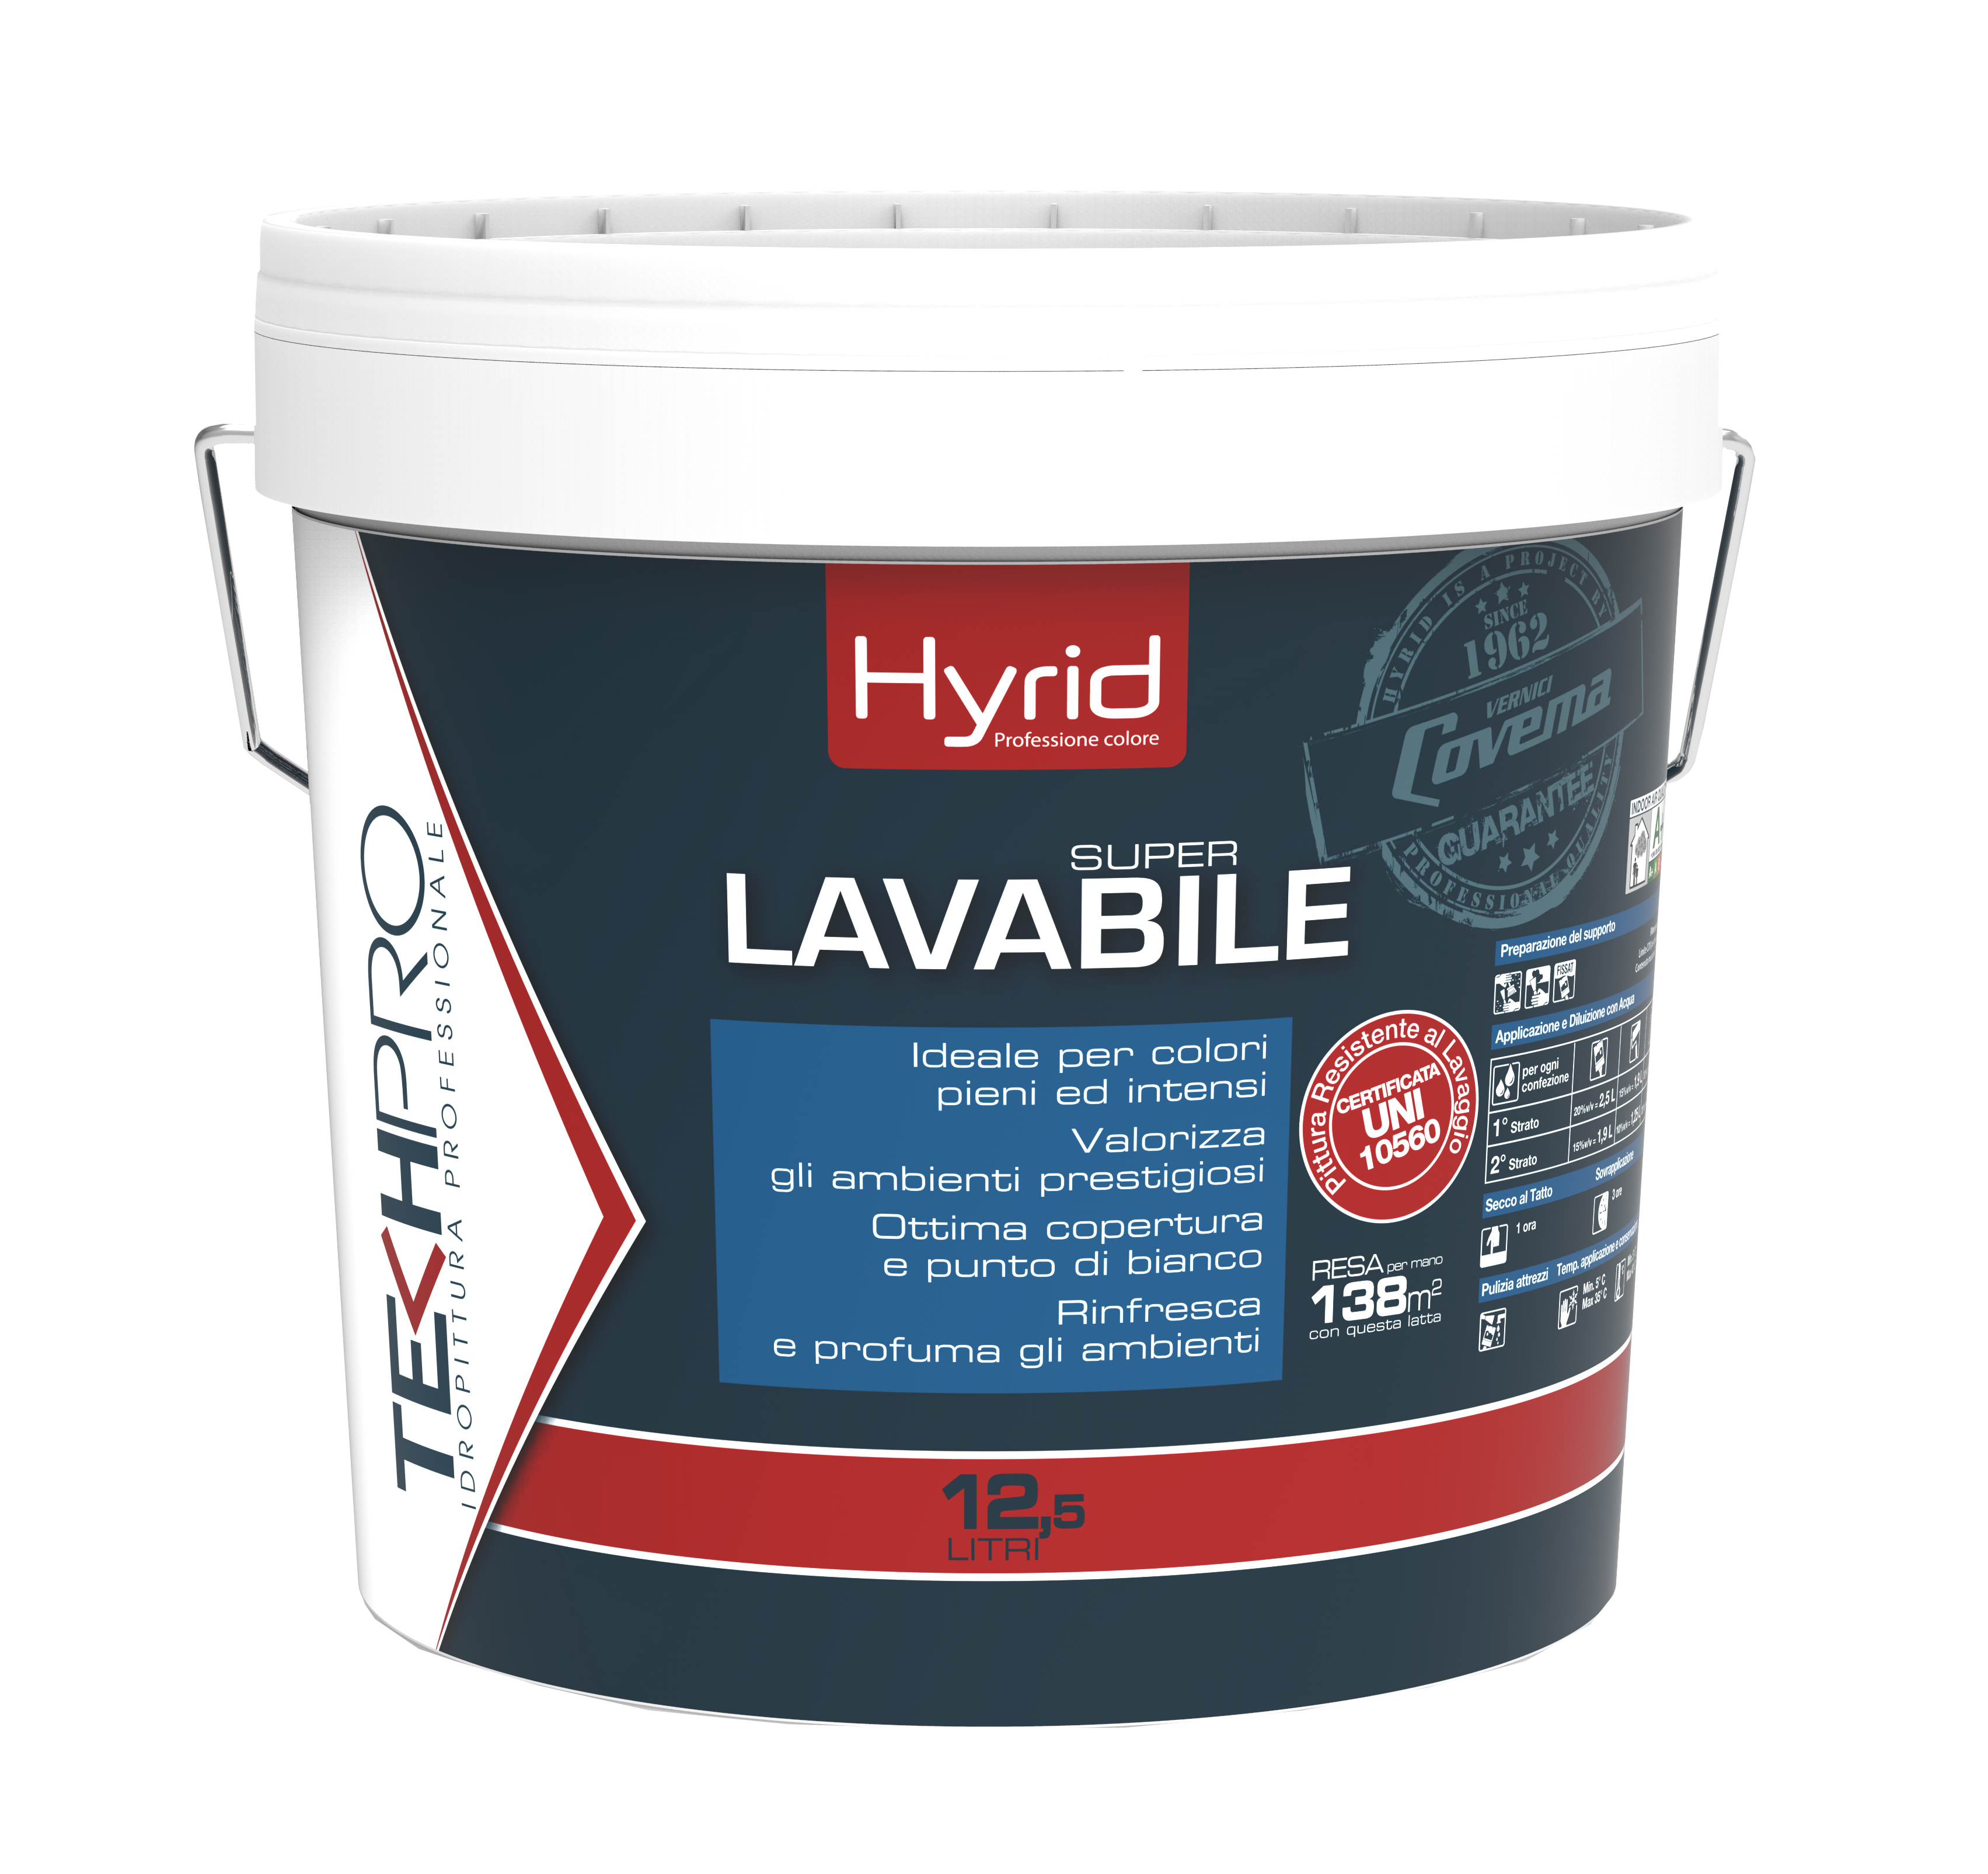 Hyrid Super Lavabile